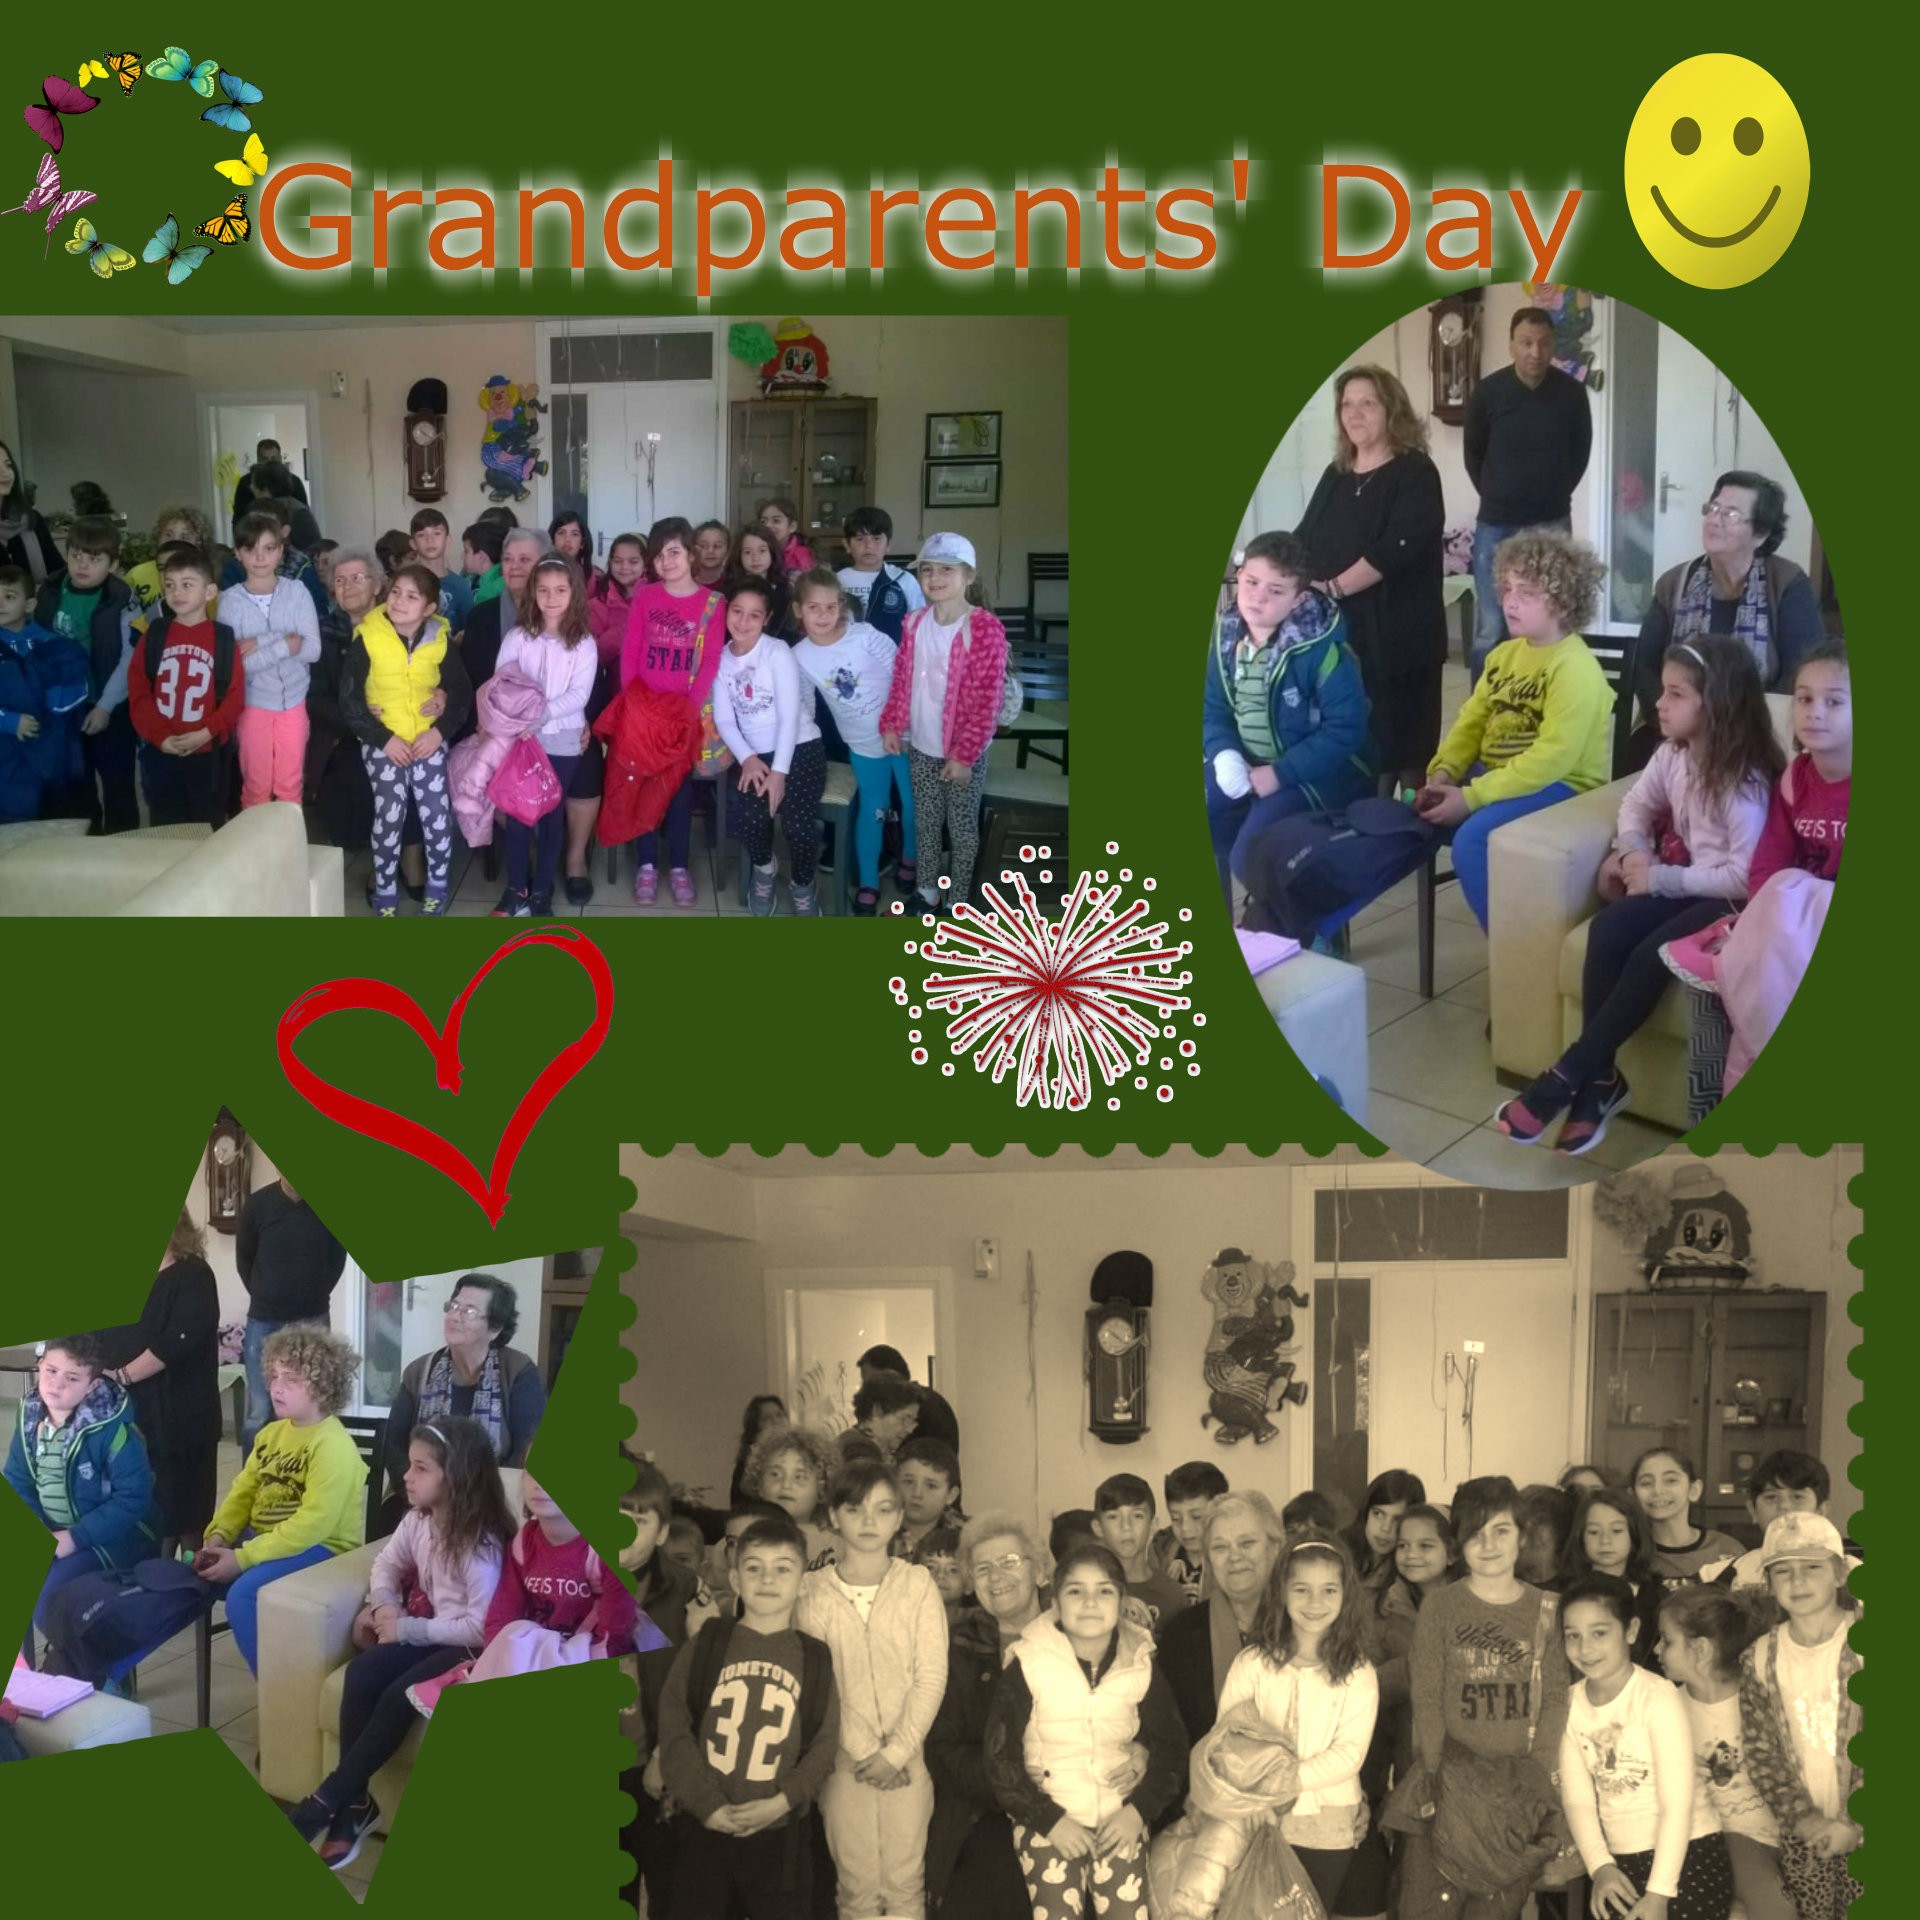 grandparents'day collage.jpg